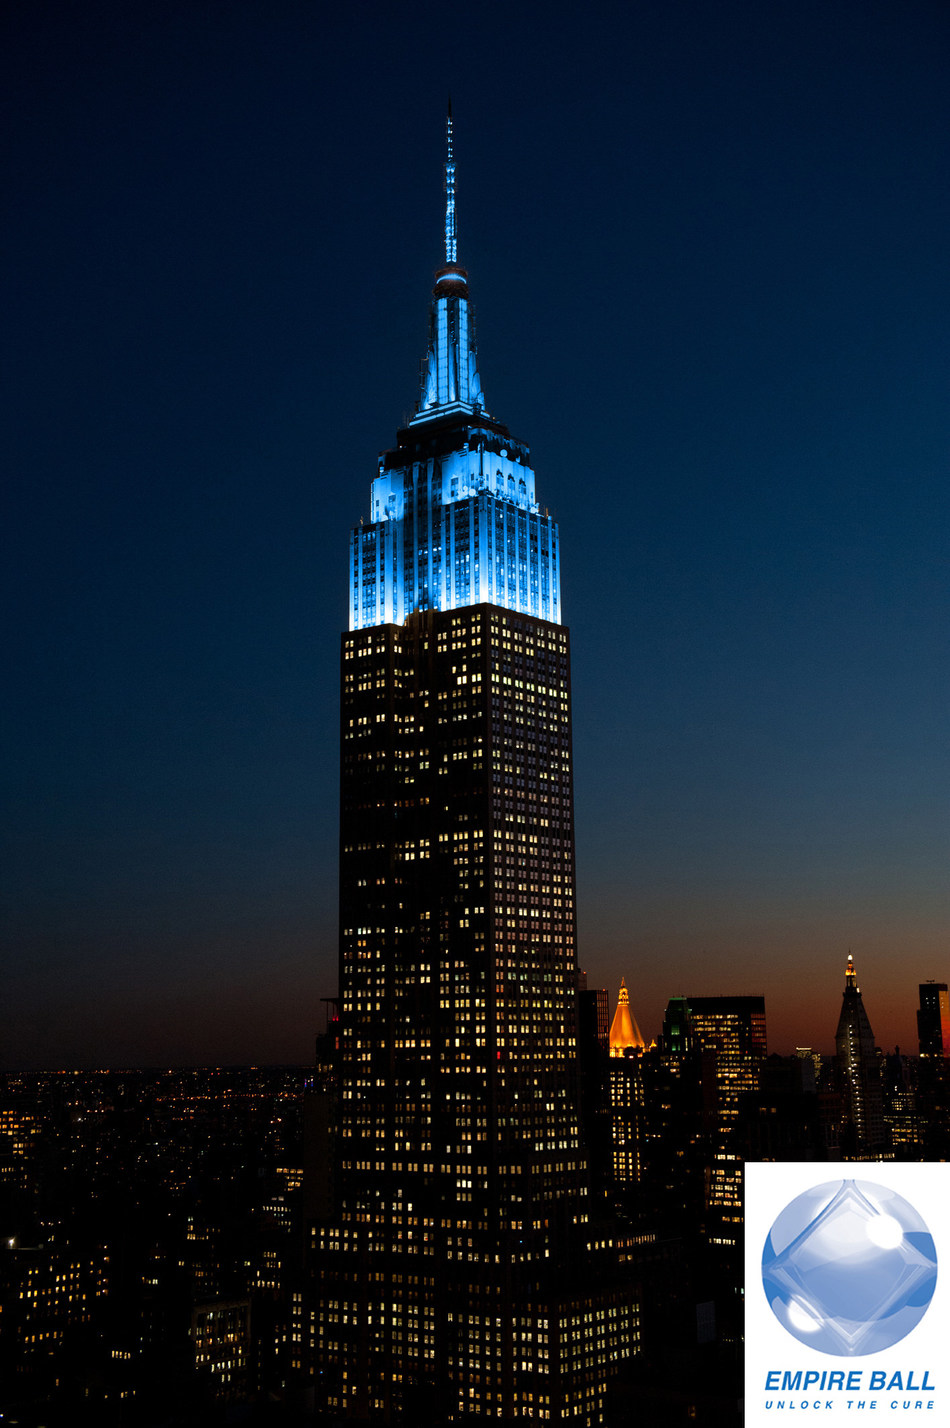 On Wednesday, Dec. 12, 2018, the Empire State Building and four other notable New York City buildings will #LightTheSkyforDRI in celebration of the Empire Ball, NYC's most anticipated event of the year for the real estate and construction industries, which raises needed funds for the Diabetes Research Institute (DRI) and its mission to find a biological cure for diabetes.